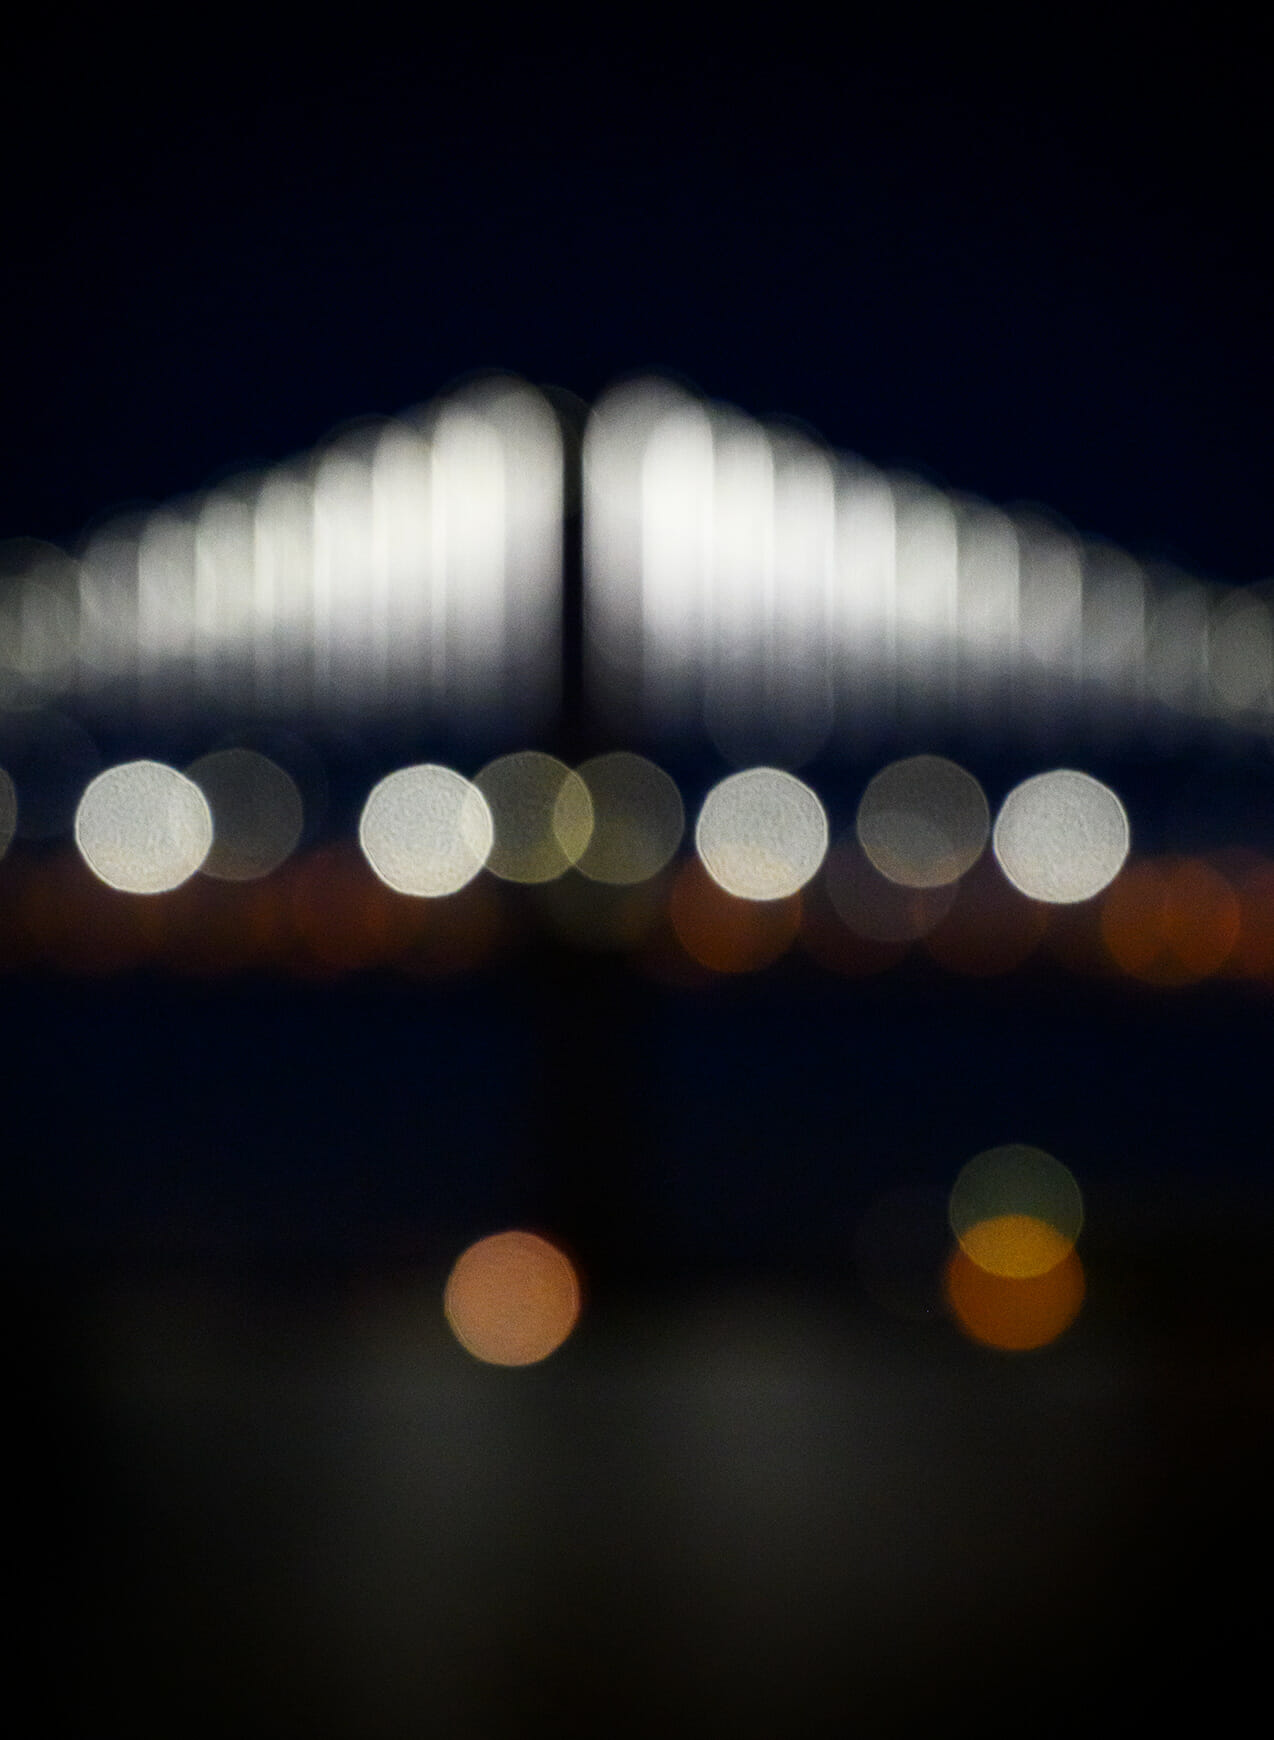 Abstract image of Bay Bridge in San Francisco at night.